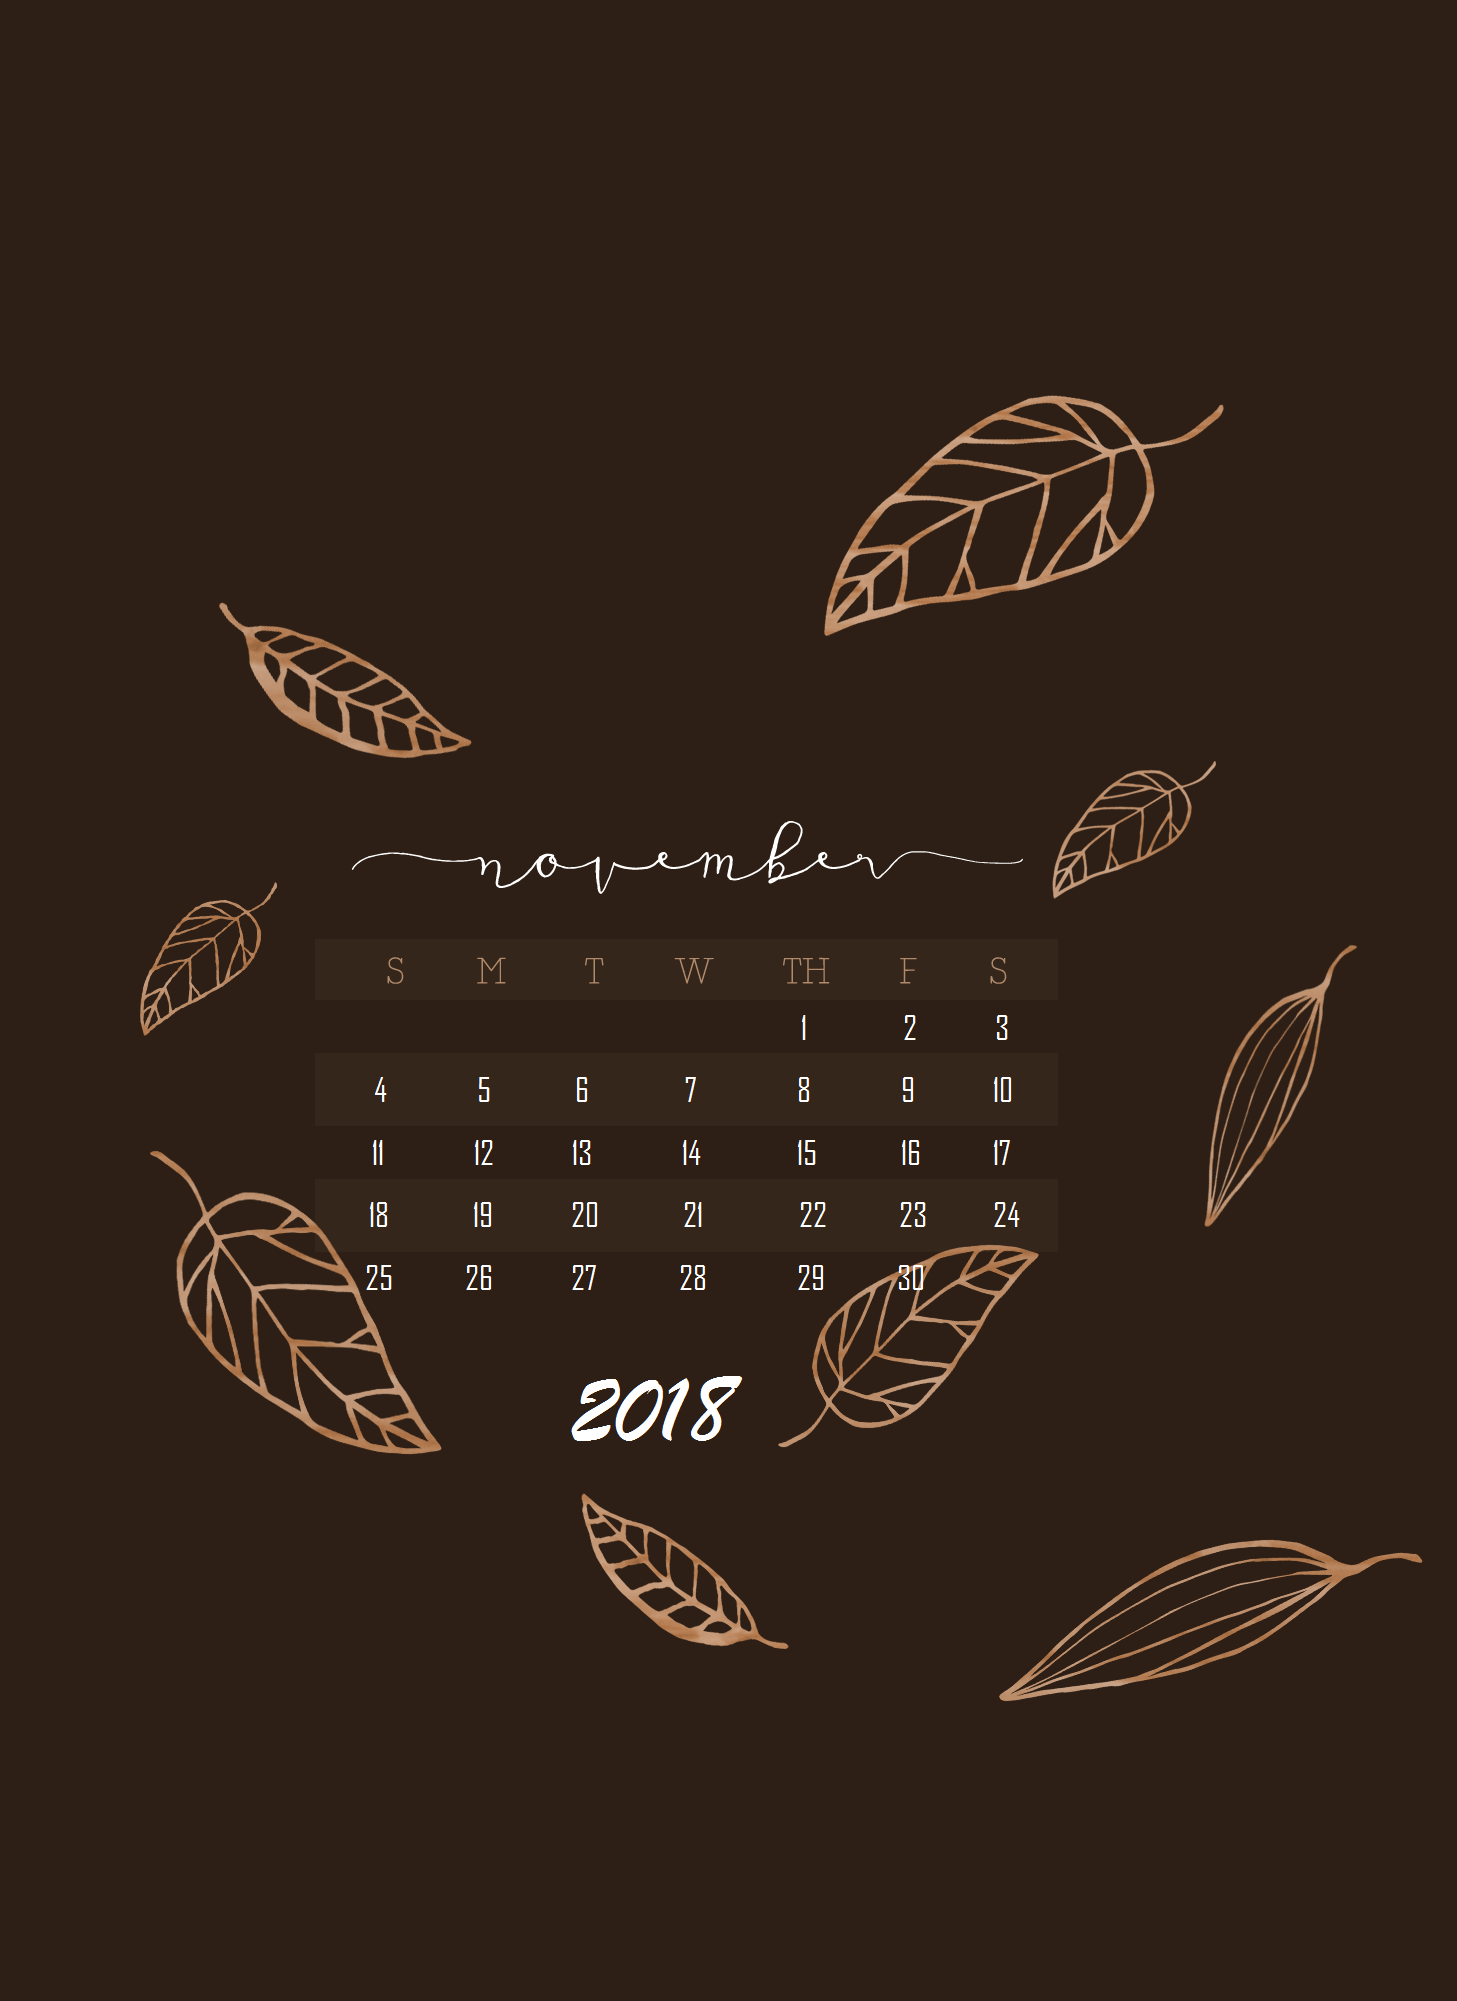 November 2018 iPhone Calendar Wallpaper Calendar